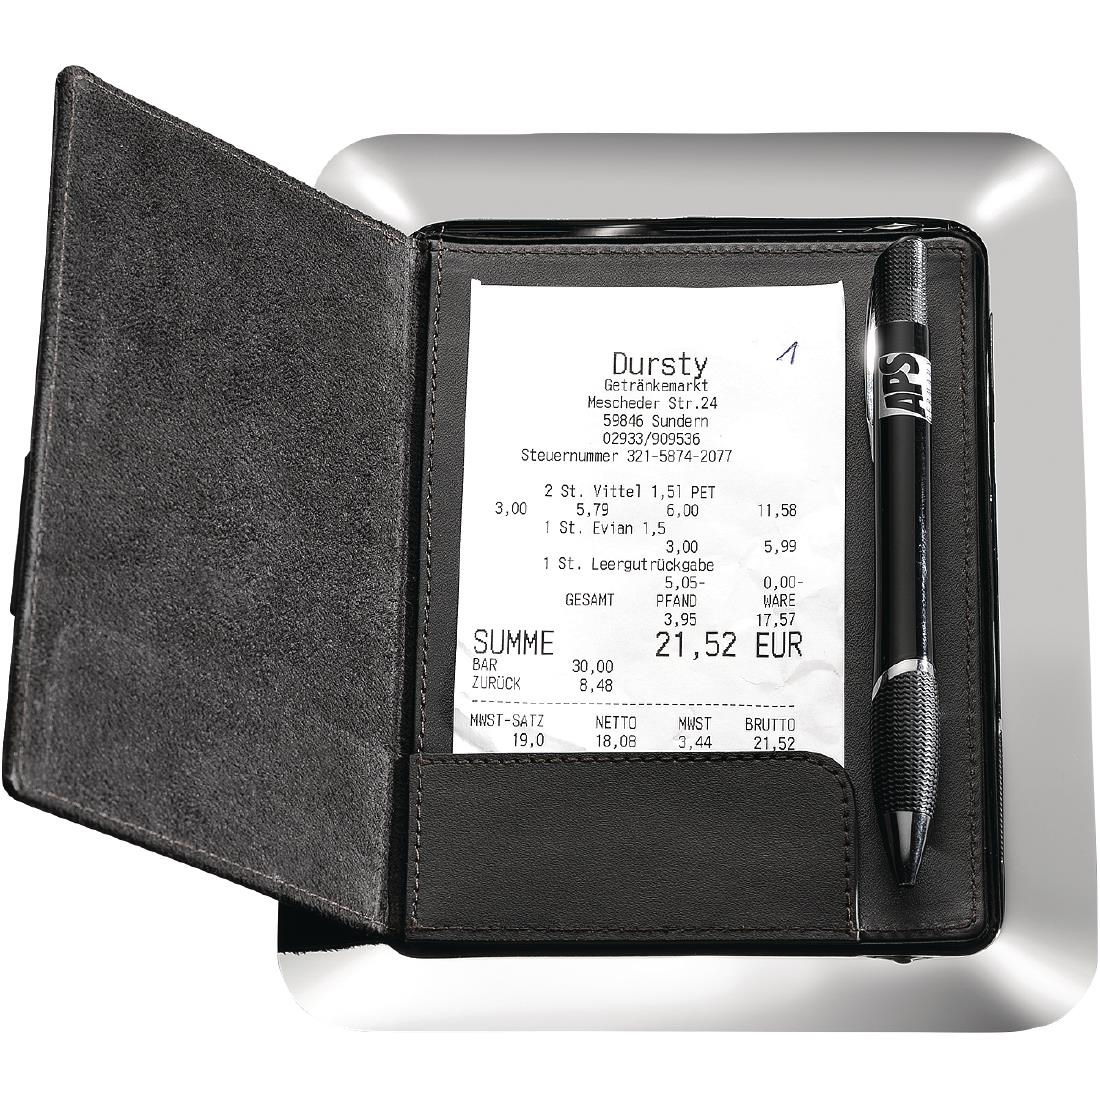 Image of APS Stainless Steel and Leather Bill Presenter